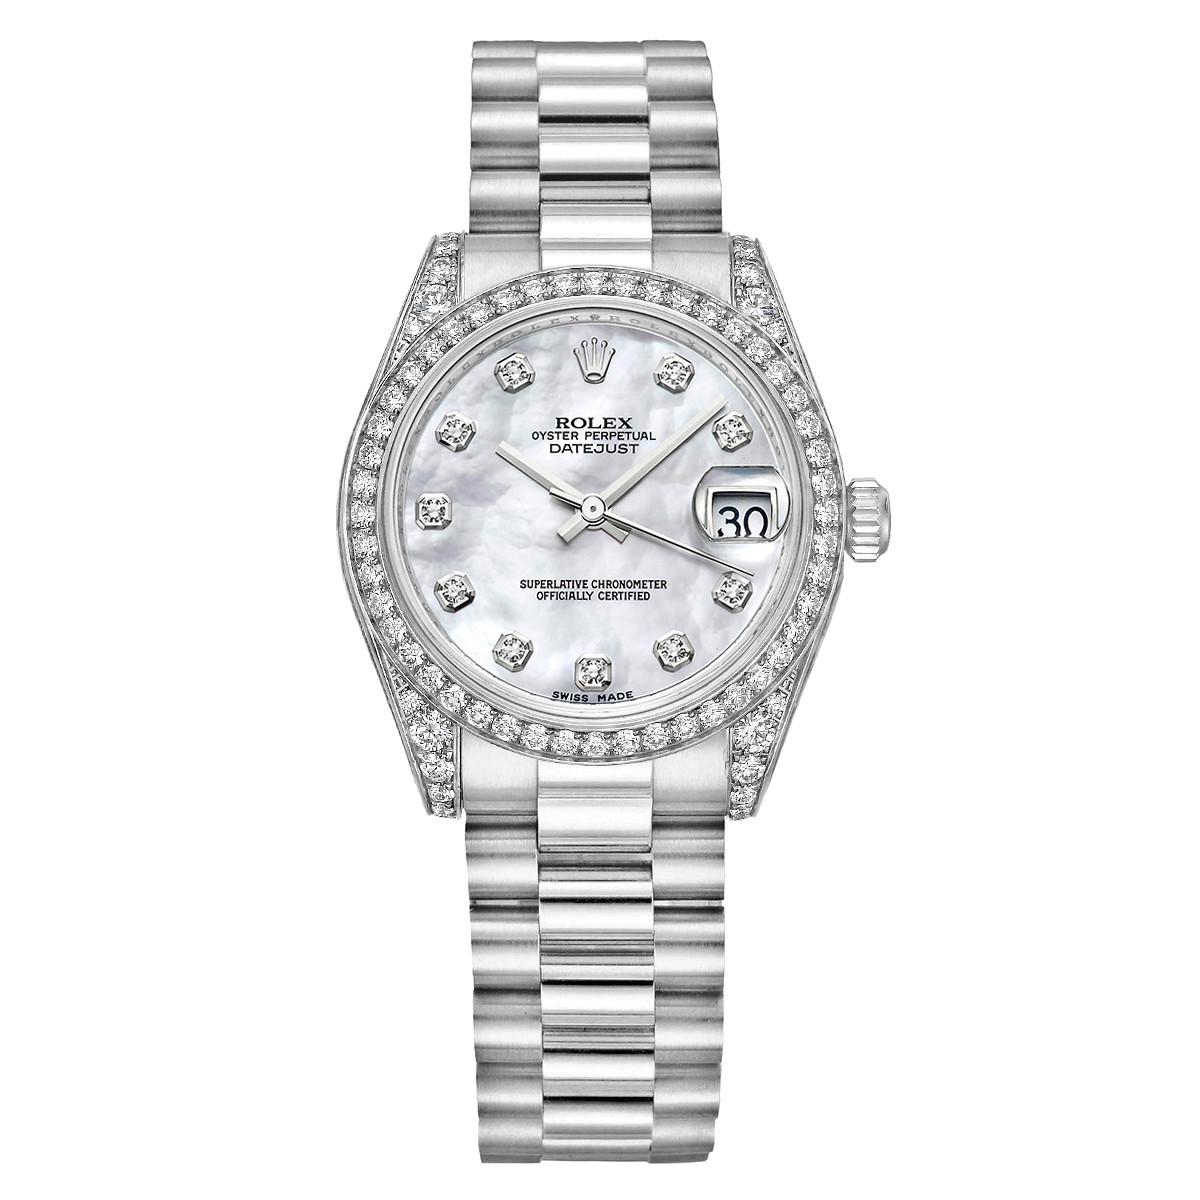 Datejust 31 White Gold & Diamond (178159)